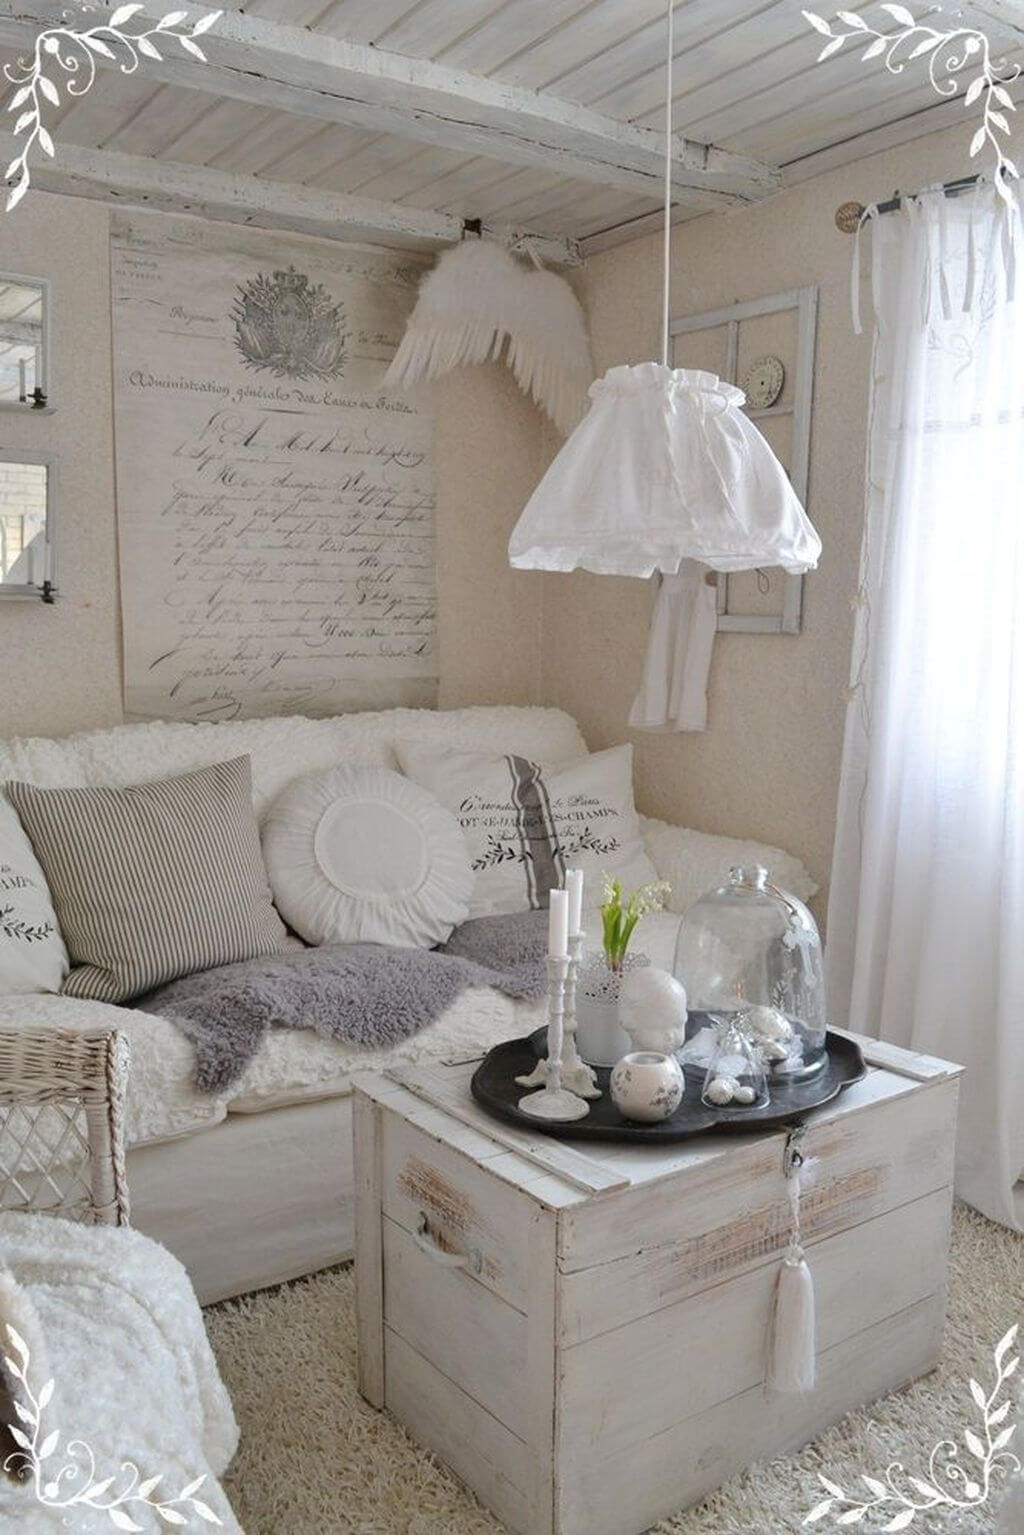 25 Fashionable Shabby Chic Bedroom (All Are Stylish!) - Q5